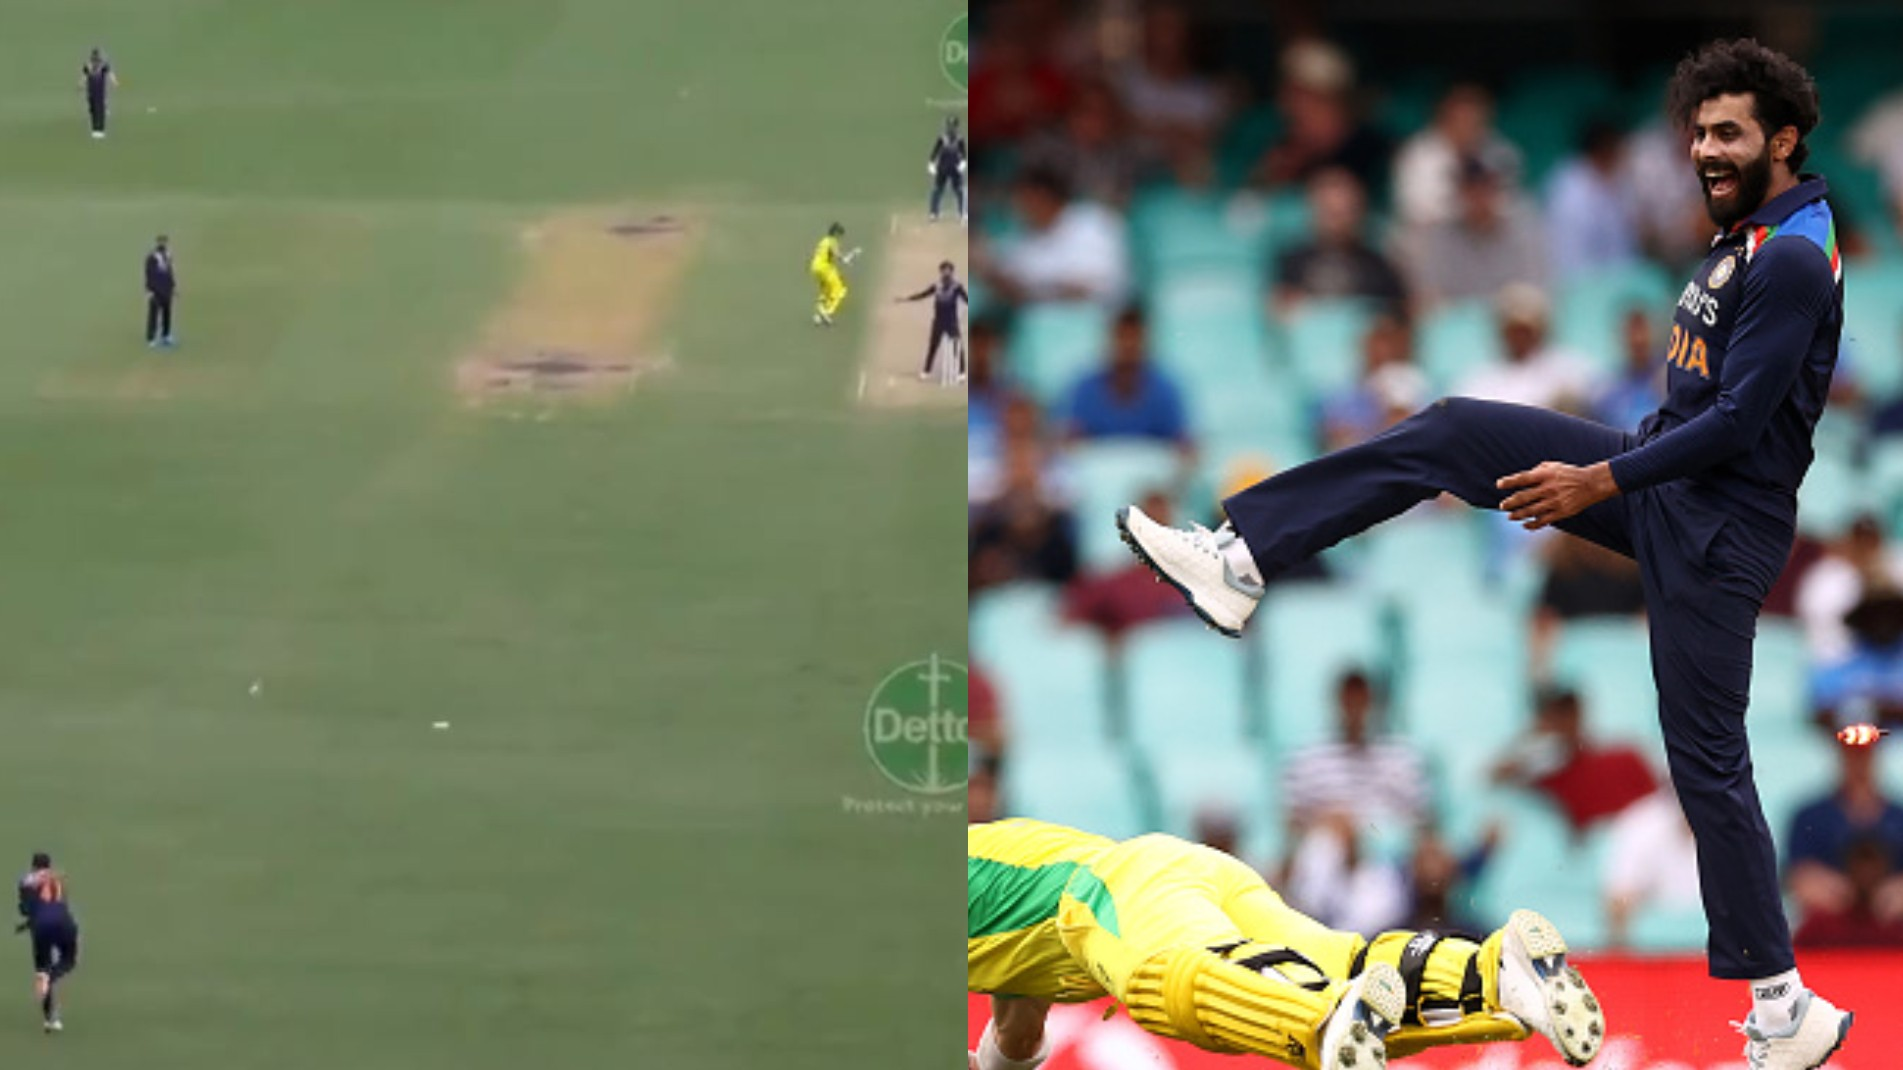 AUS v IND 2020-21: WATCH- Shreyas Iyer runs out David Warner with a direct hit from long-off